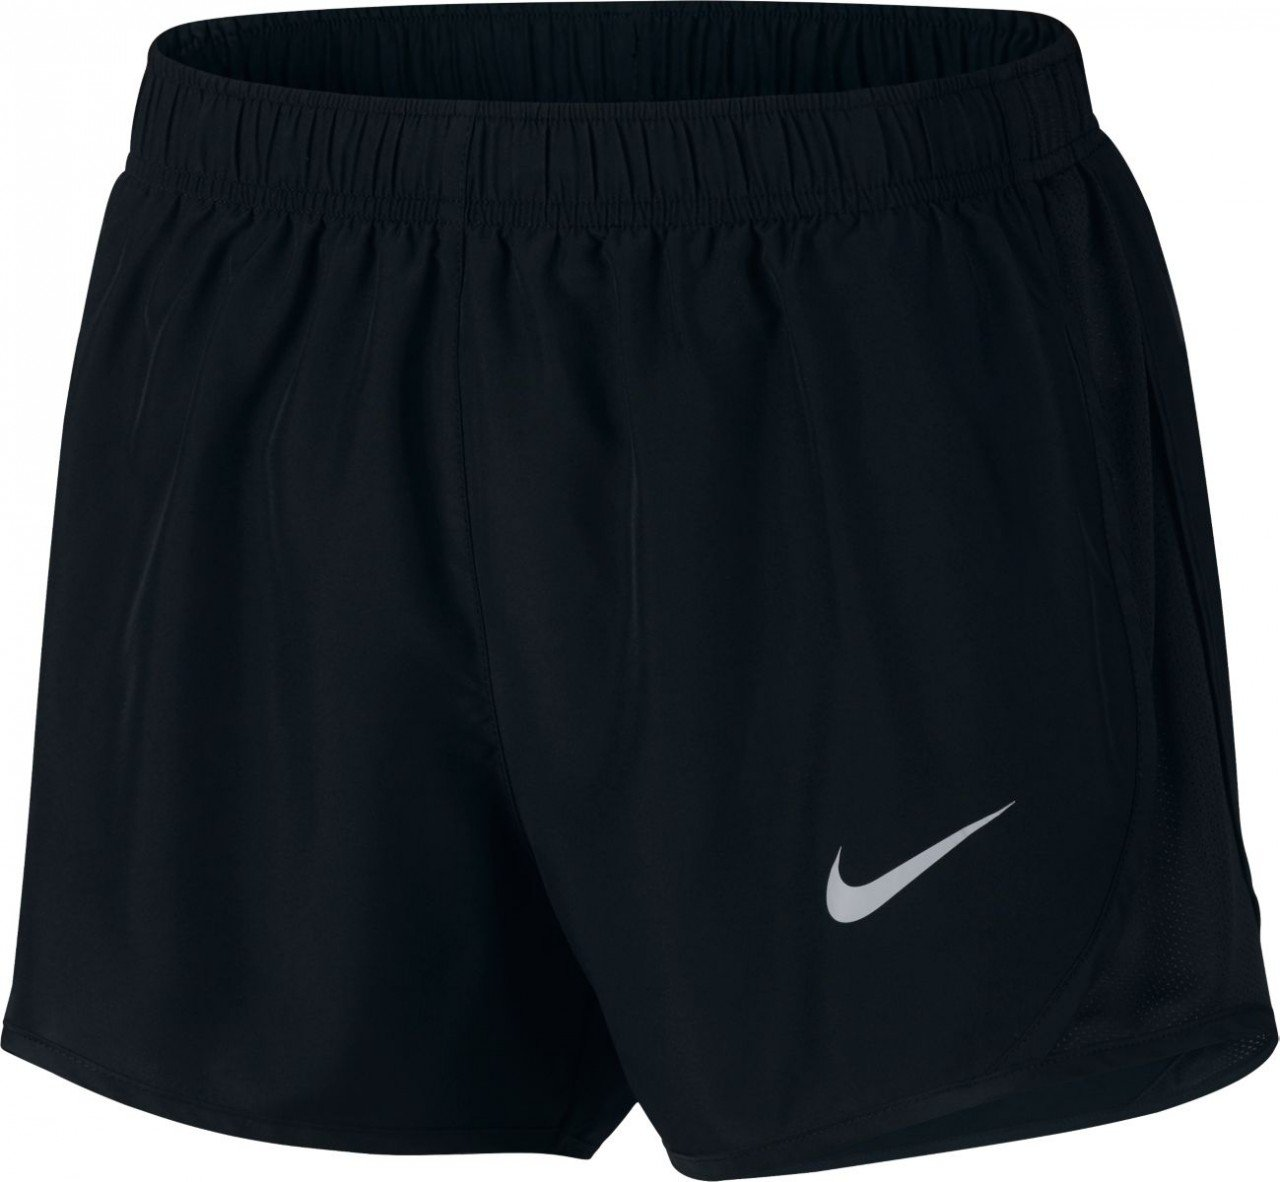 Nike Womens Tempo Running Shorts Black/Wolf Grey 831558-014 Size X-Small by Nike